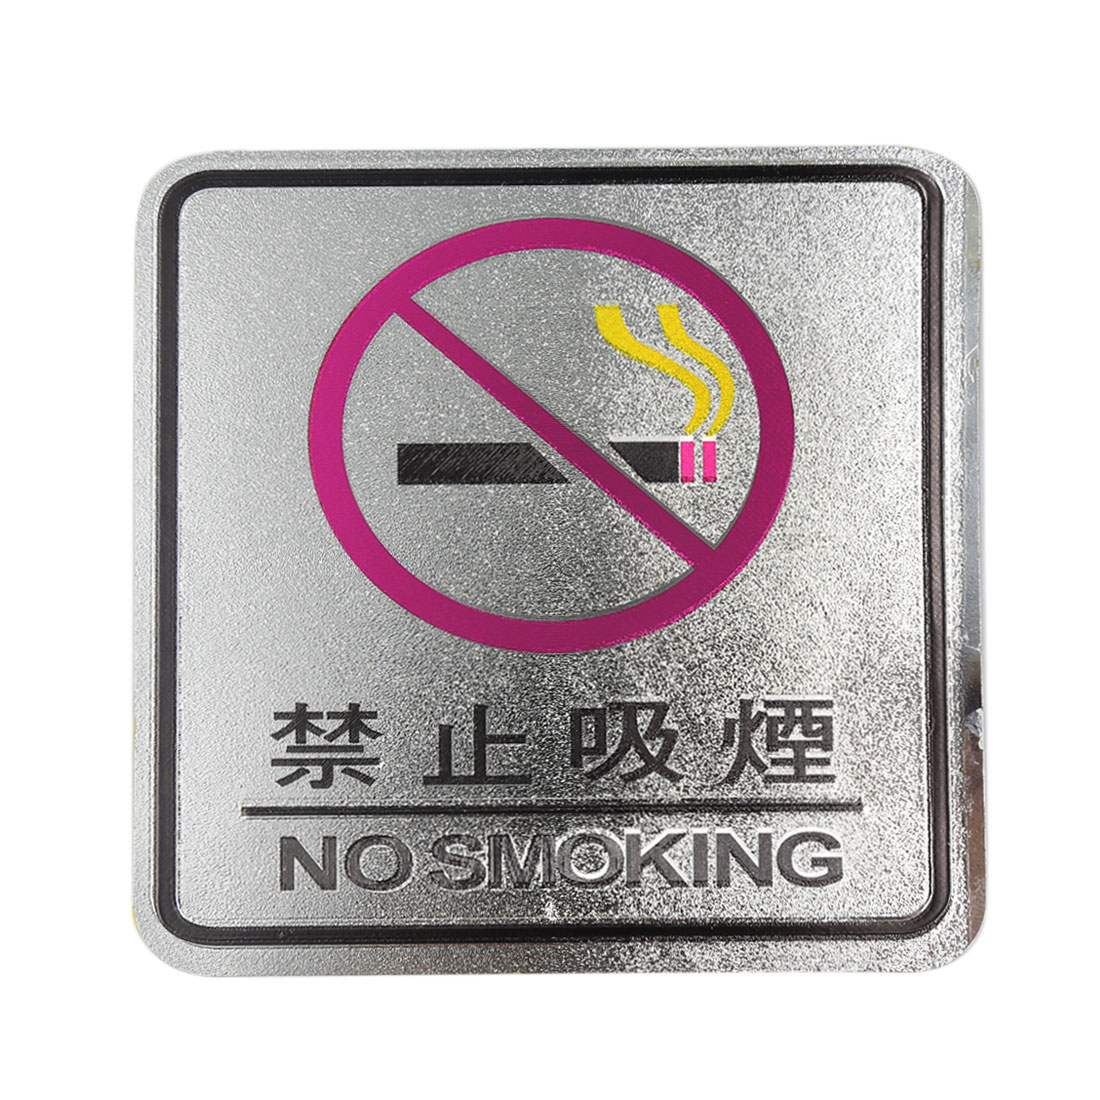 No Smoking Warning Sign Decal Self-adhesive Car Reflective Sticker 11cm x 11cm